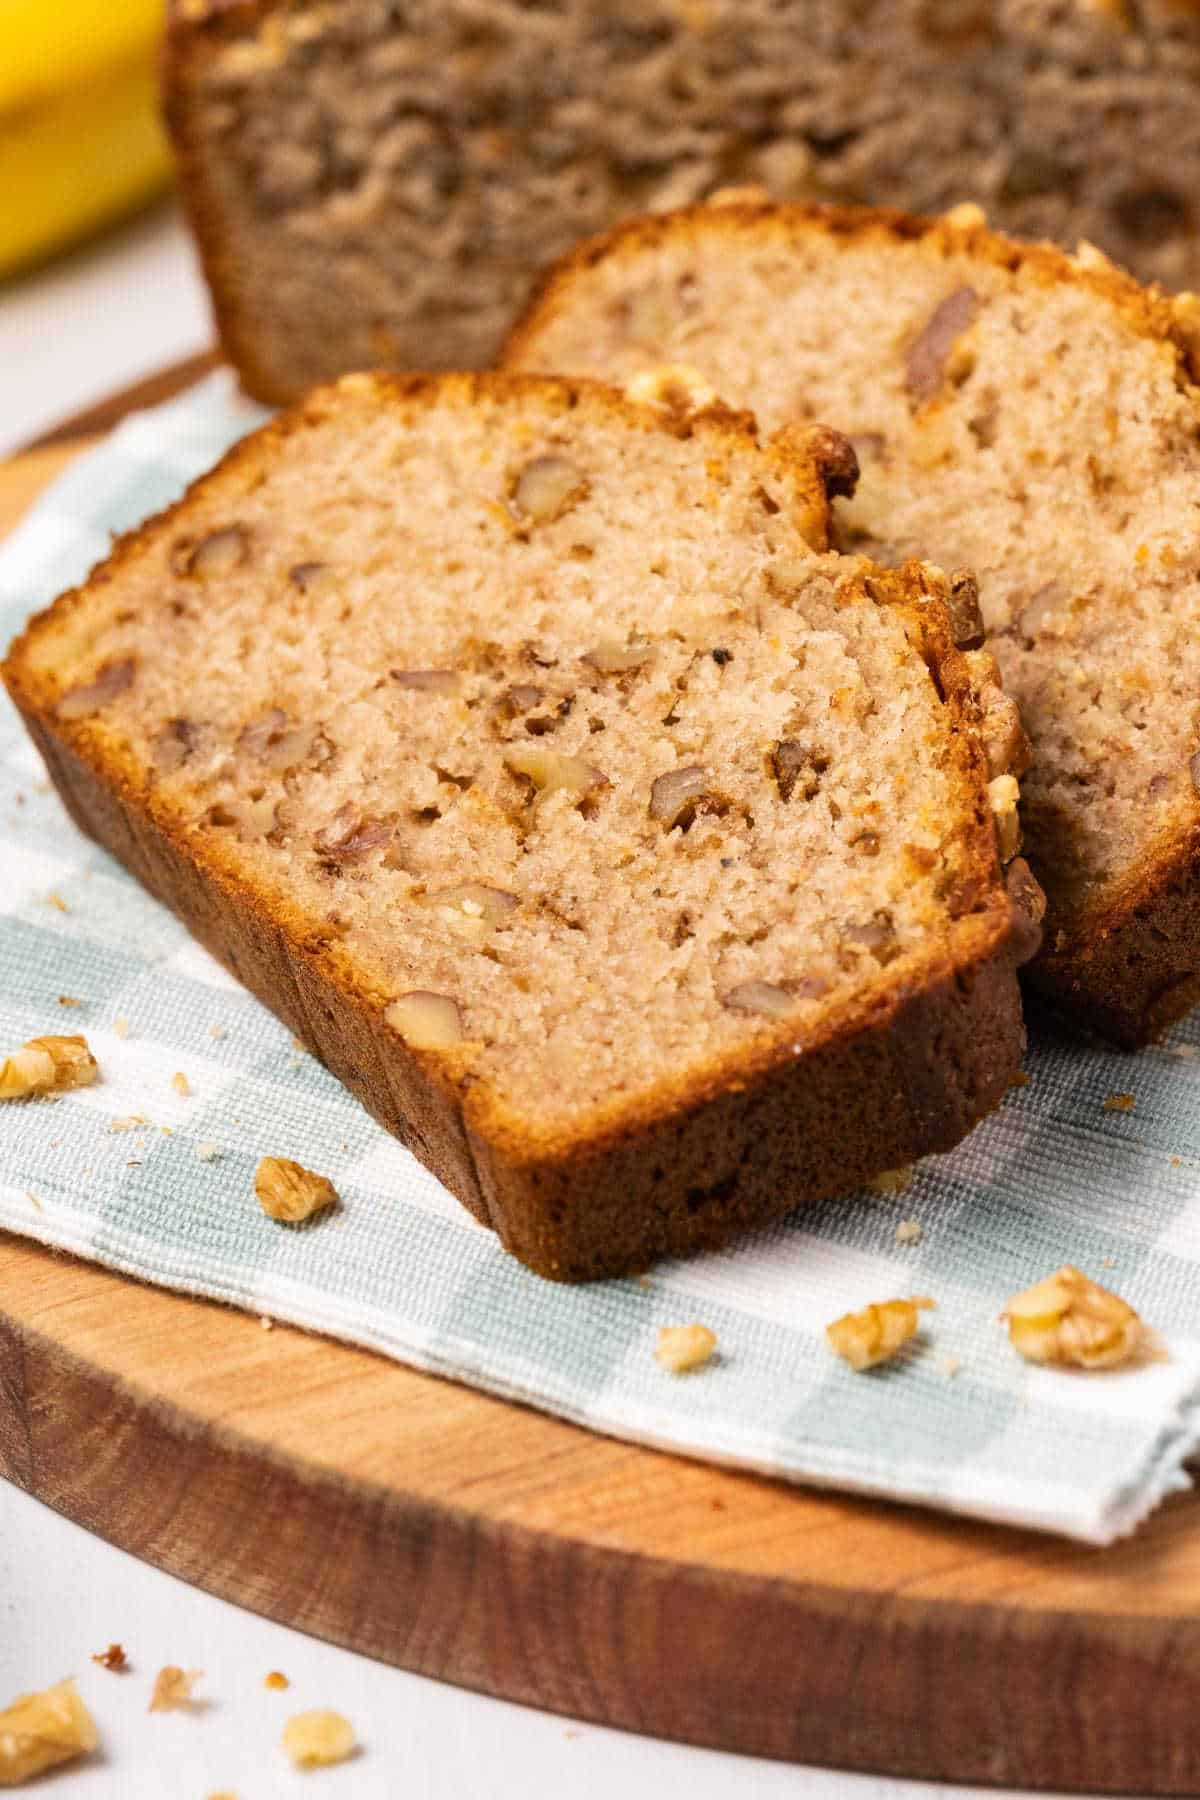 Slices of banana bread on a napkin and wooden board.